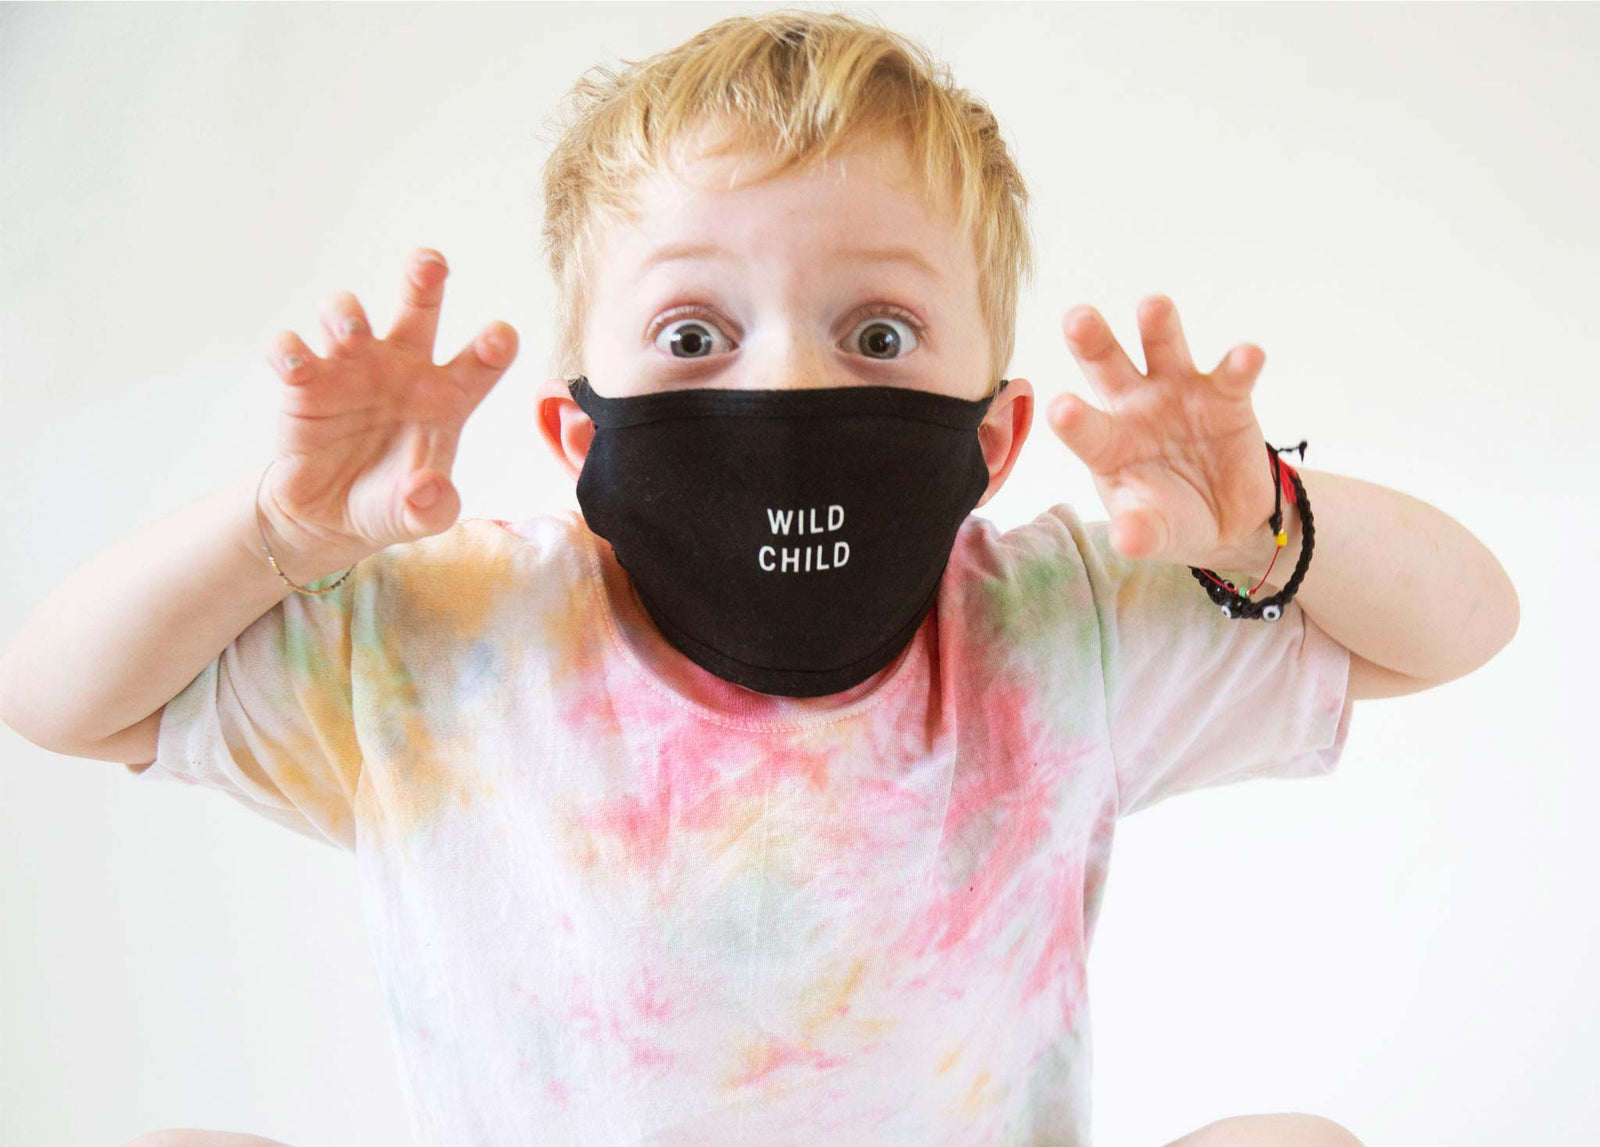 Customize Your Non-Medical Toddler Face Mask - Wholesale